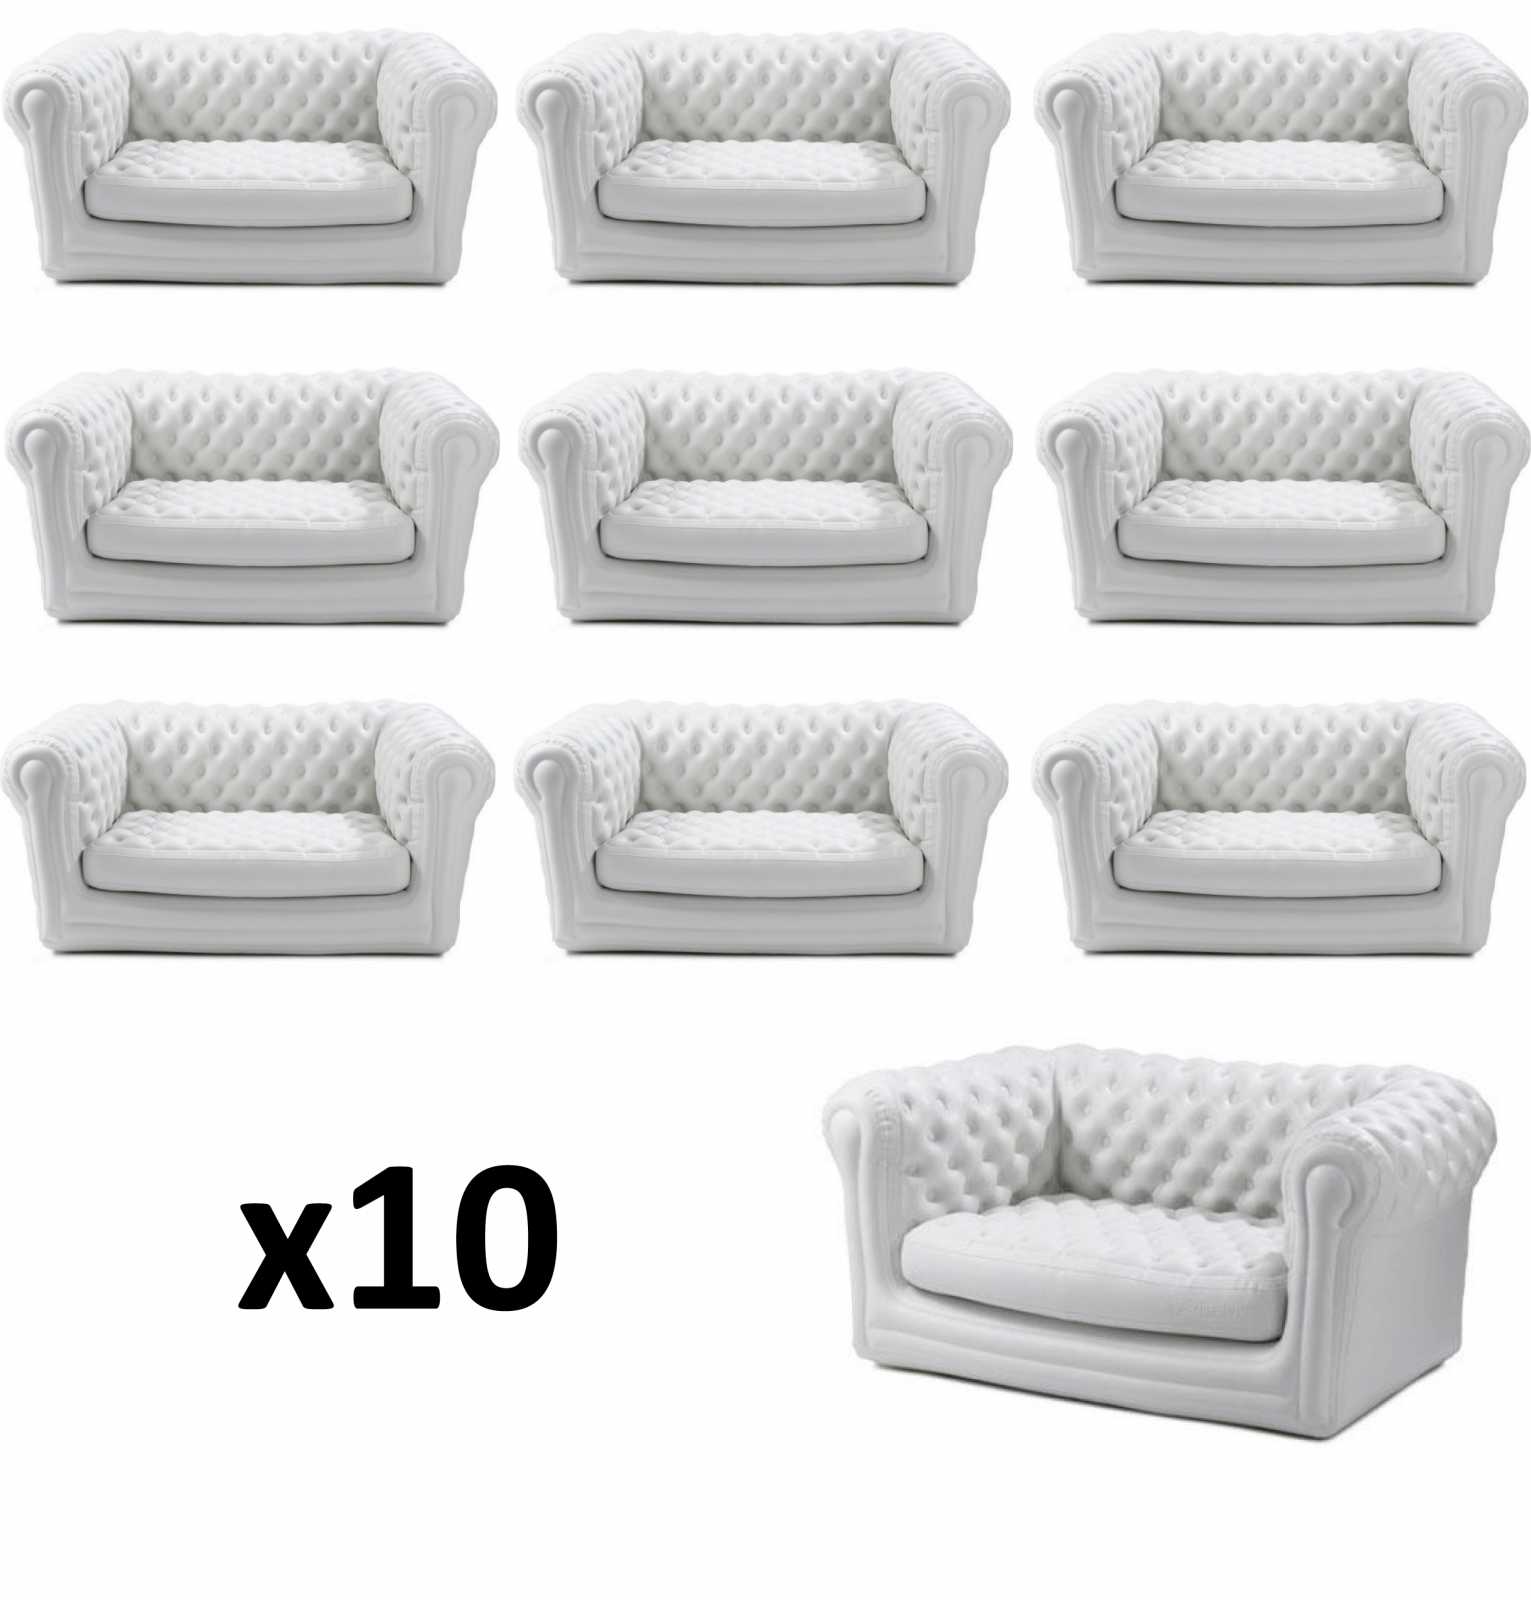 Location canap blanc chesterfield gonflable - Canape gonflable chesterfield ...